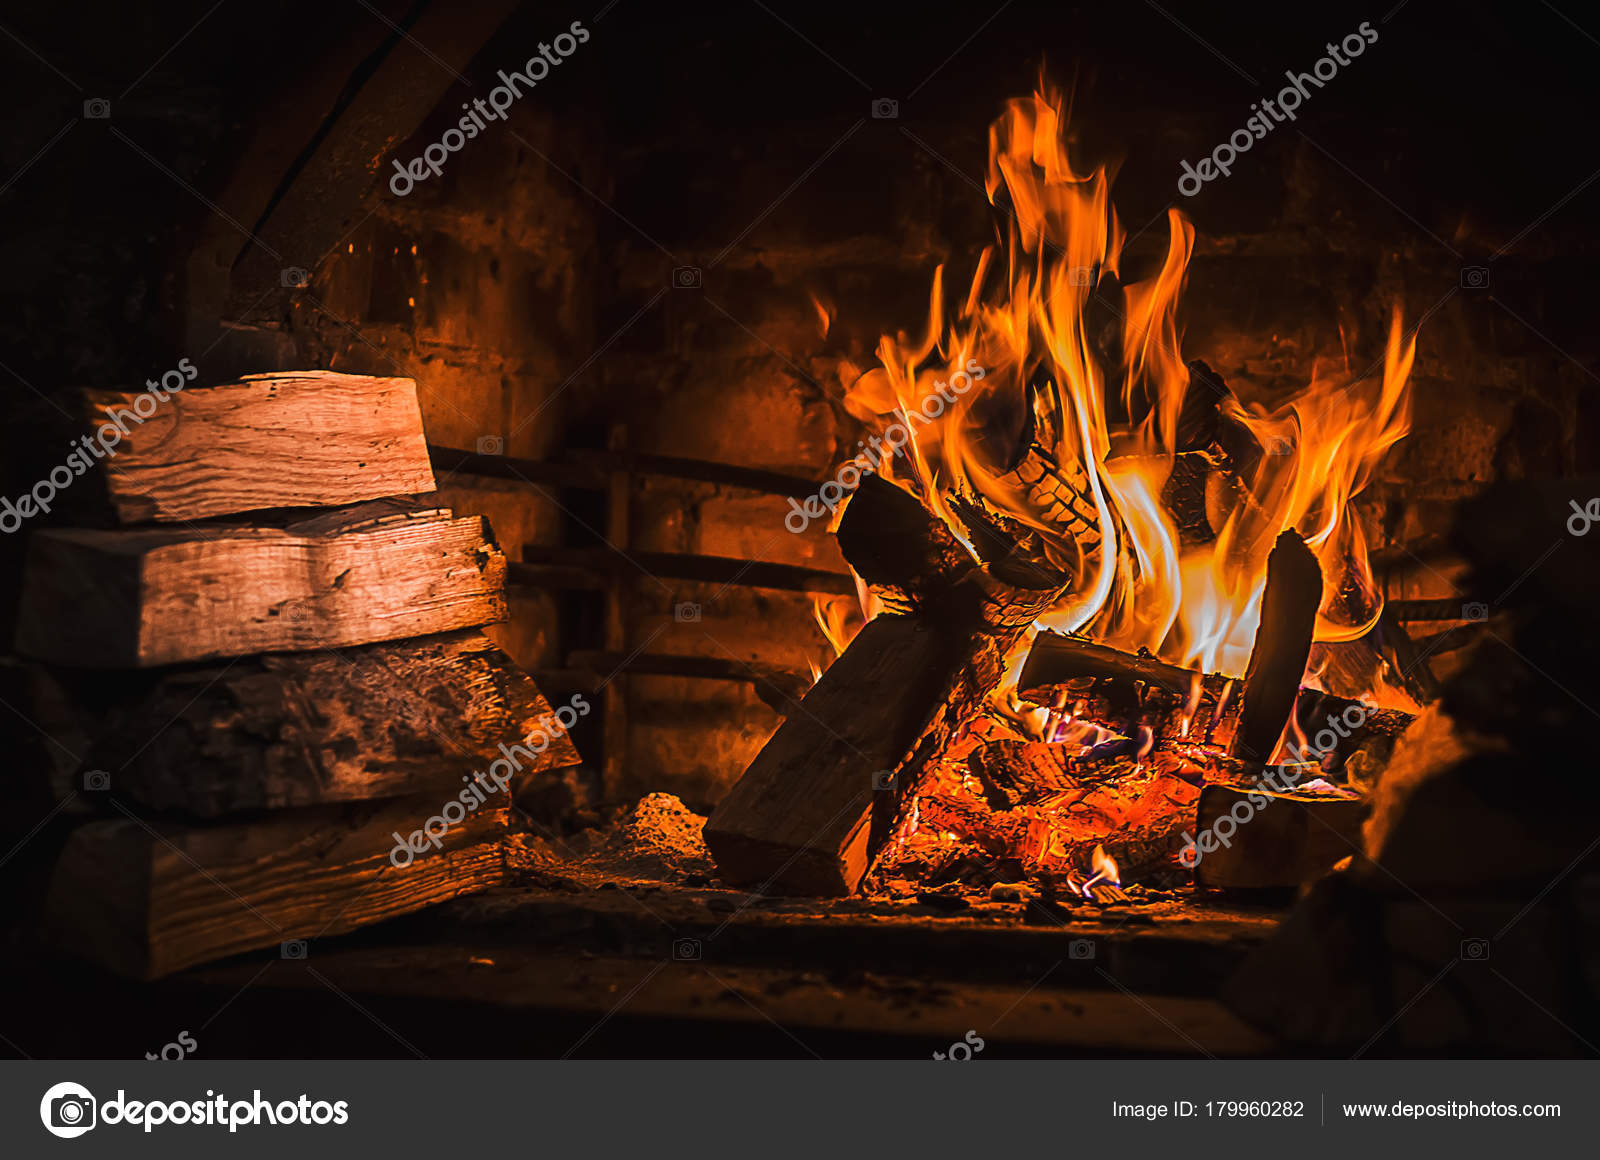 Burning Fire Open Fireplace Wooden Fuel Firewood Stockfoto